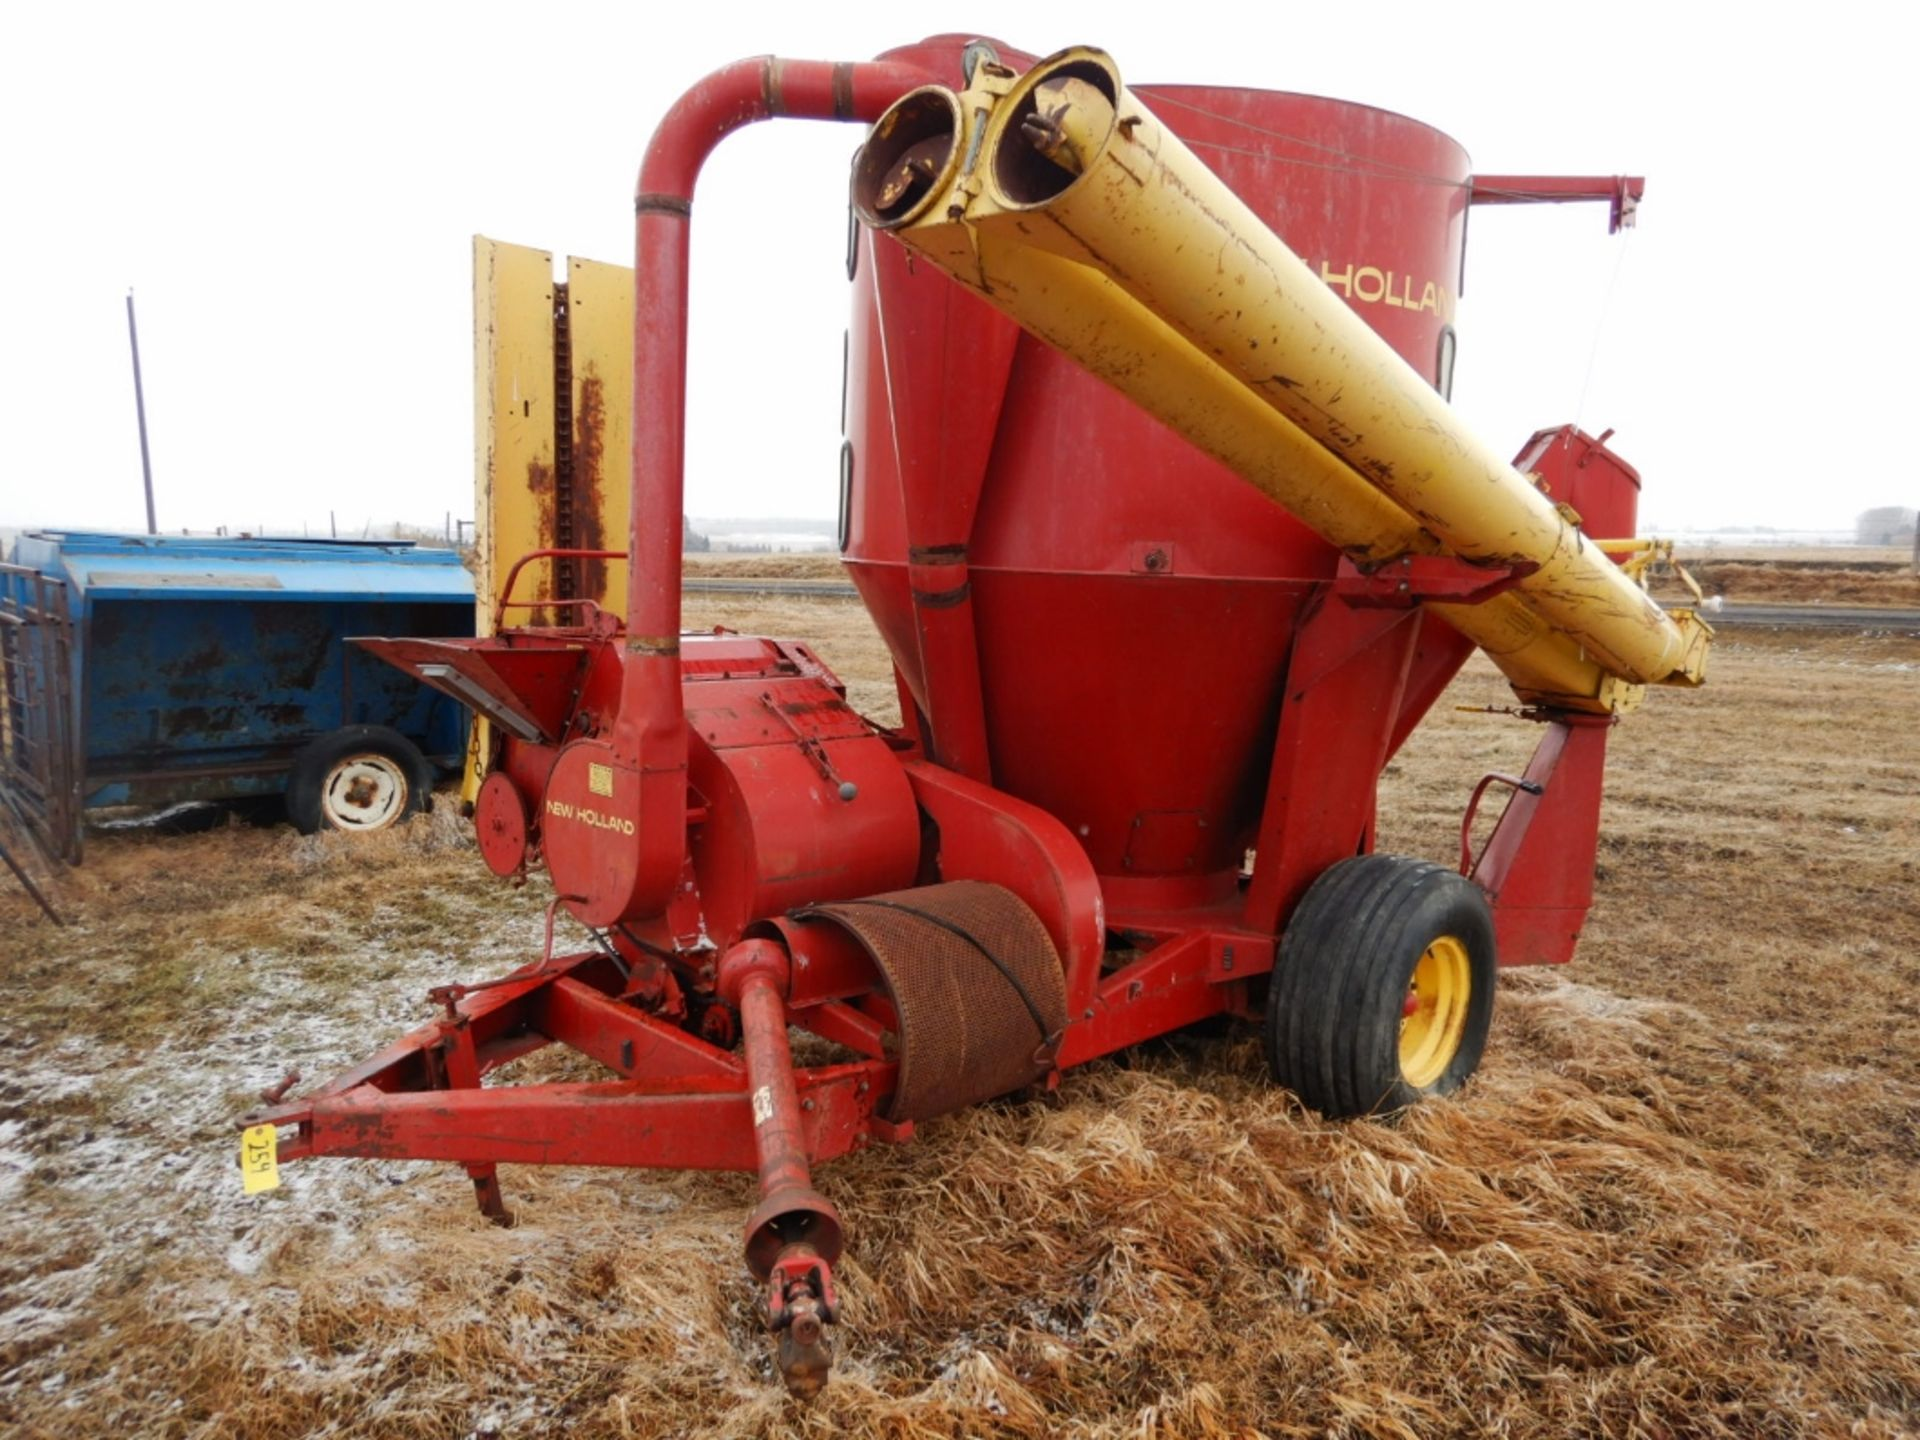 NH 357 GRINDER MIXER MILL W/SQUARE BALE FEEDER ATTACH., EXTRA SCREENS